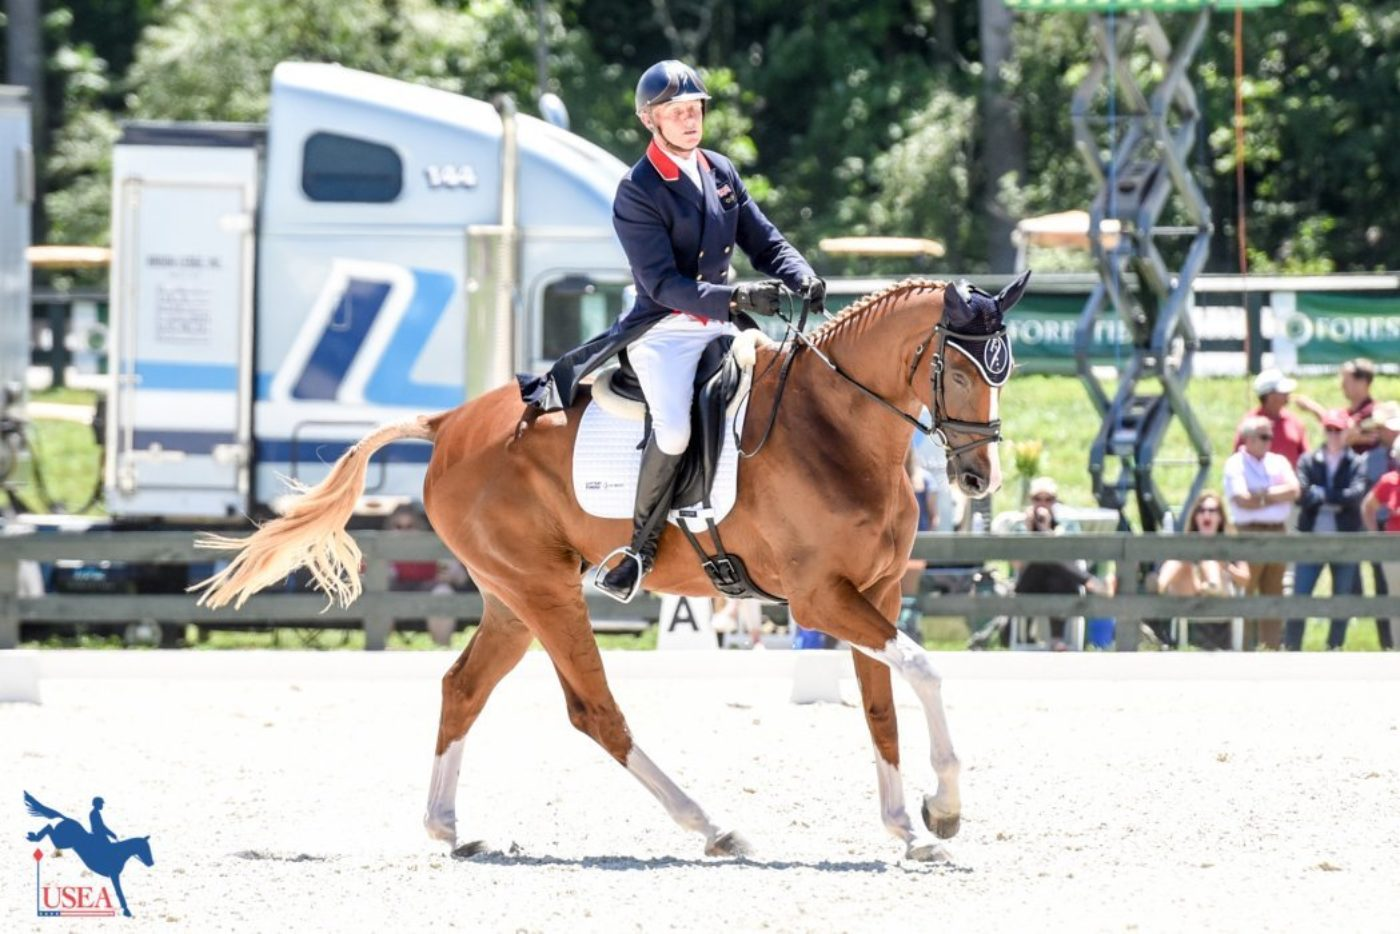 12th - Leslie Law and Voltaire De Tre - 33.6